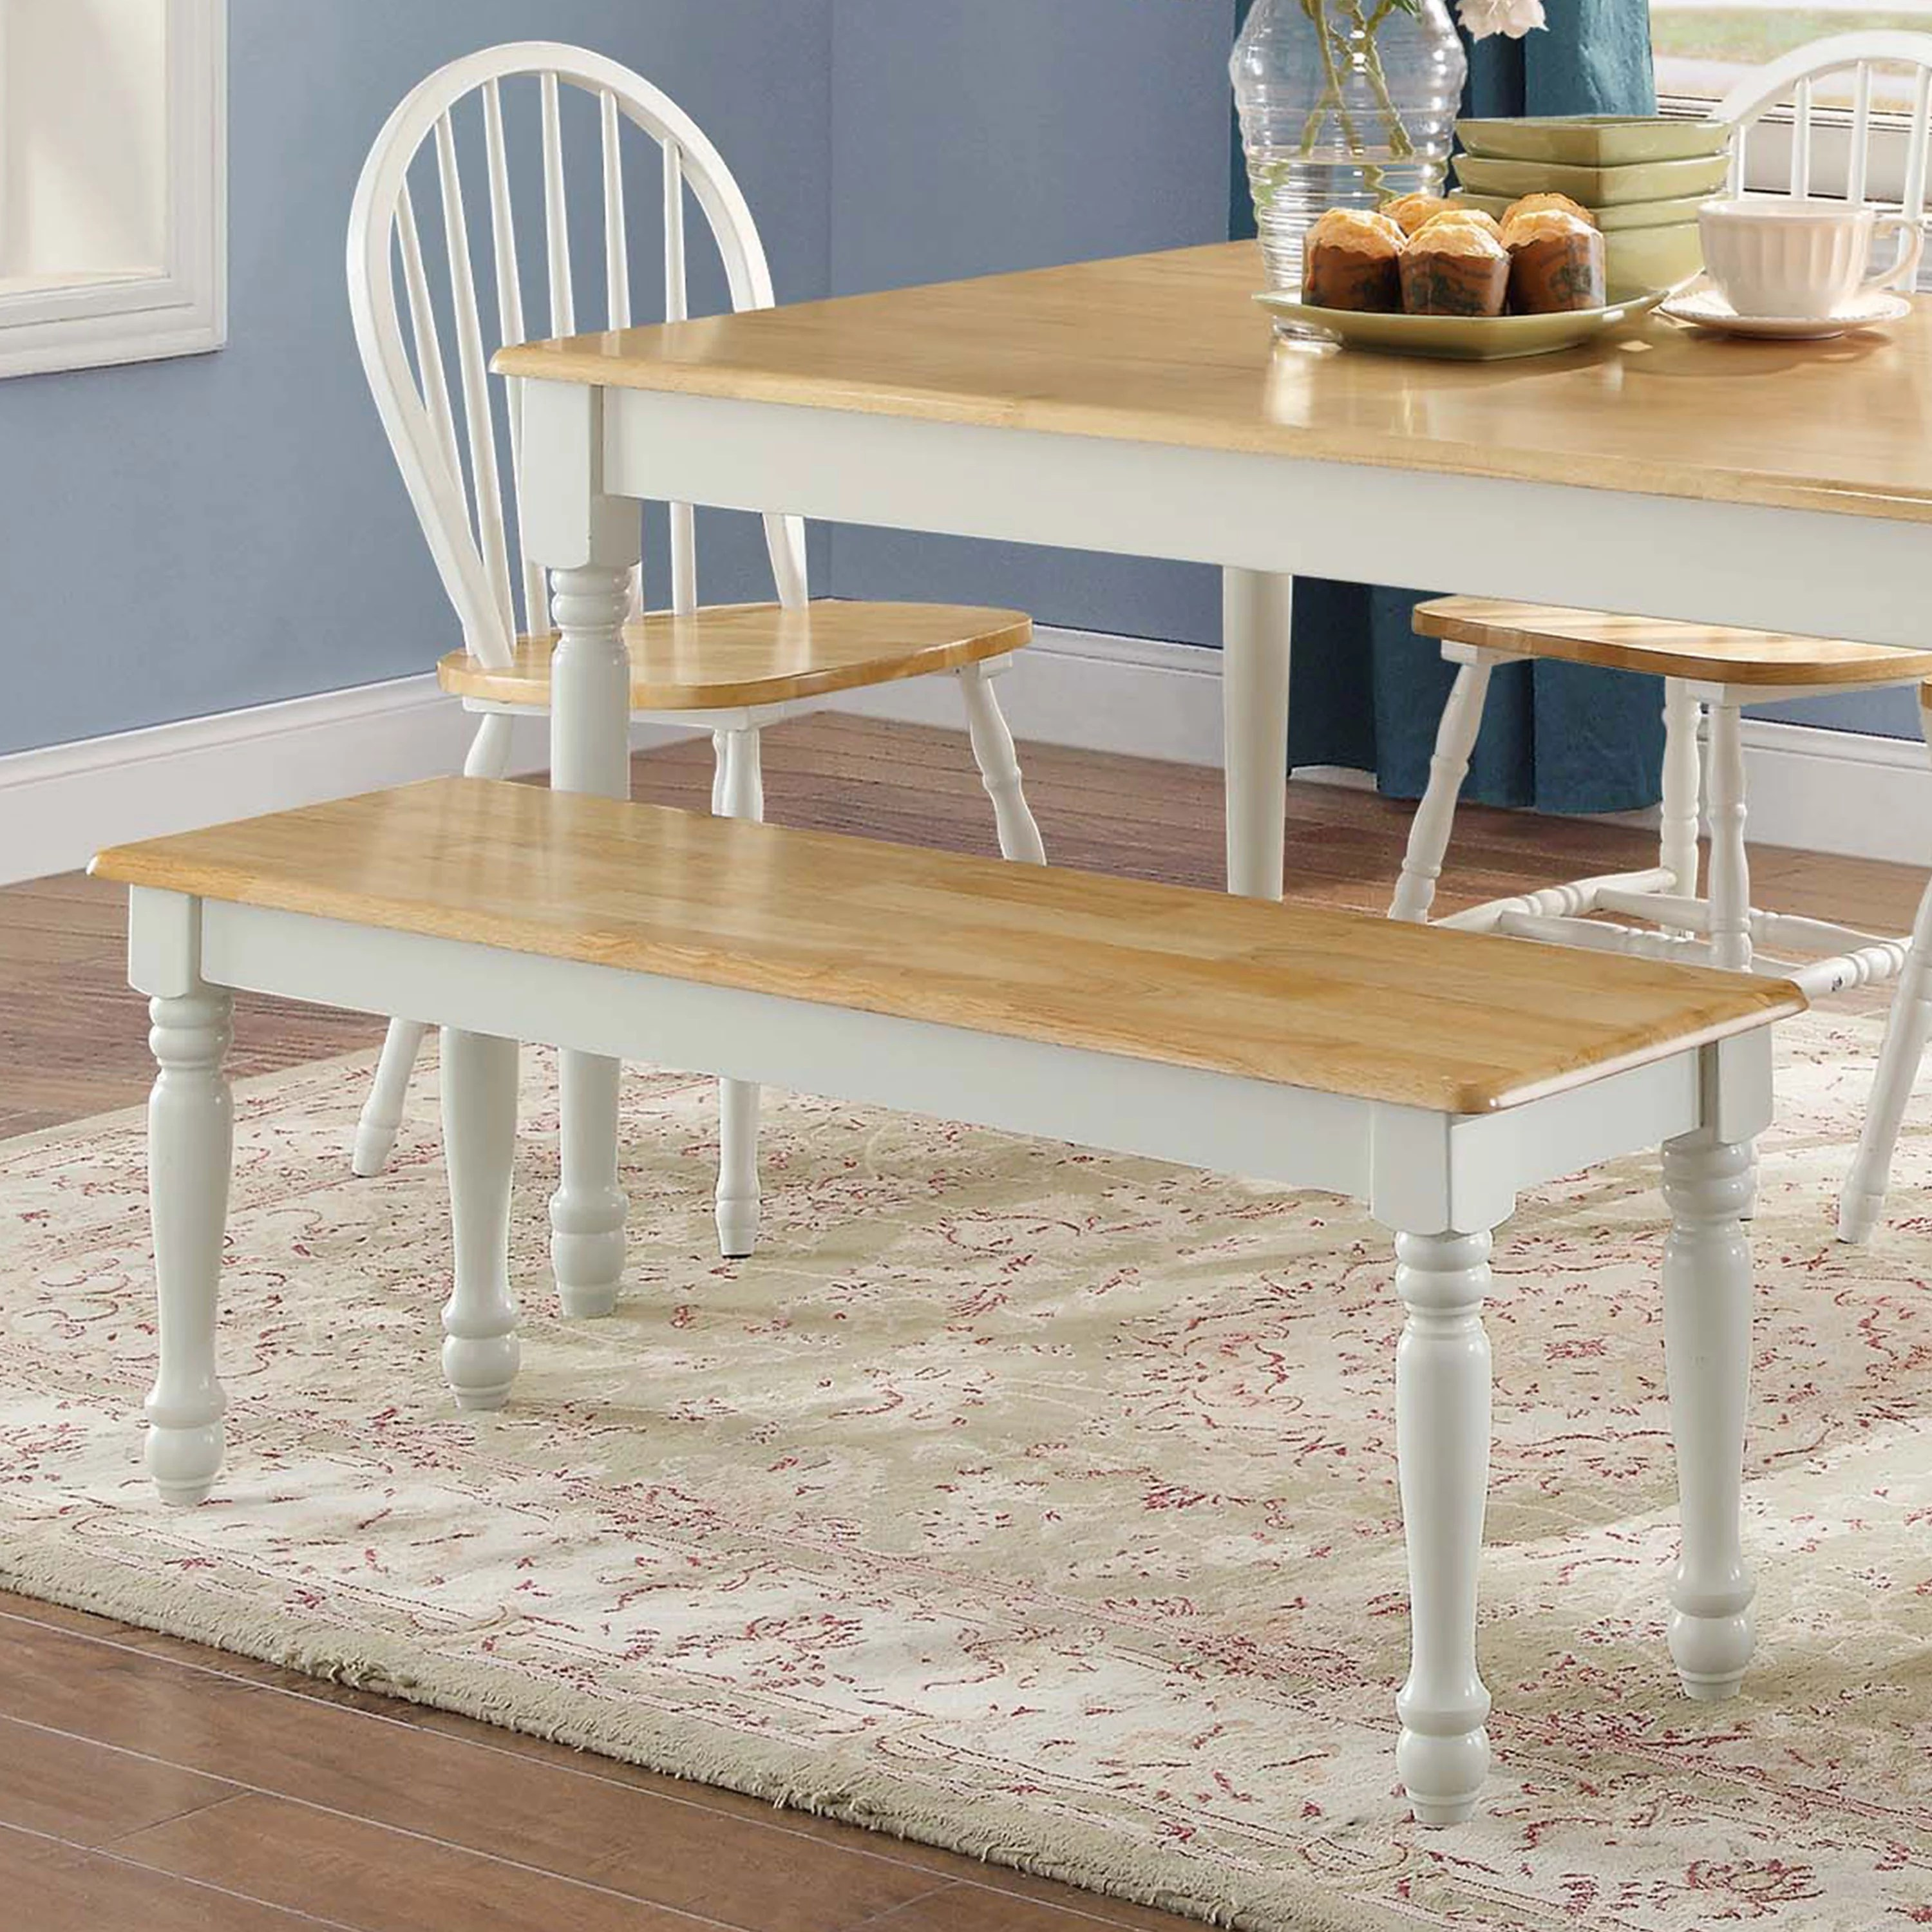 Better Homes Gardens Autumn Lane Farmhouse Solid Wood Dining Bench White And Natural Finish Walmart Com Walmart Com